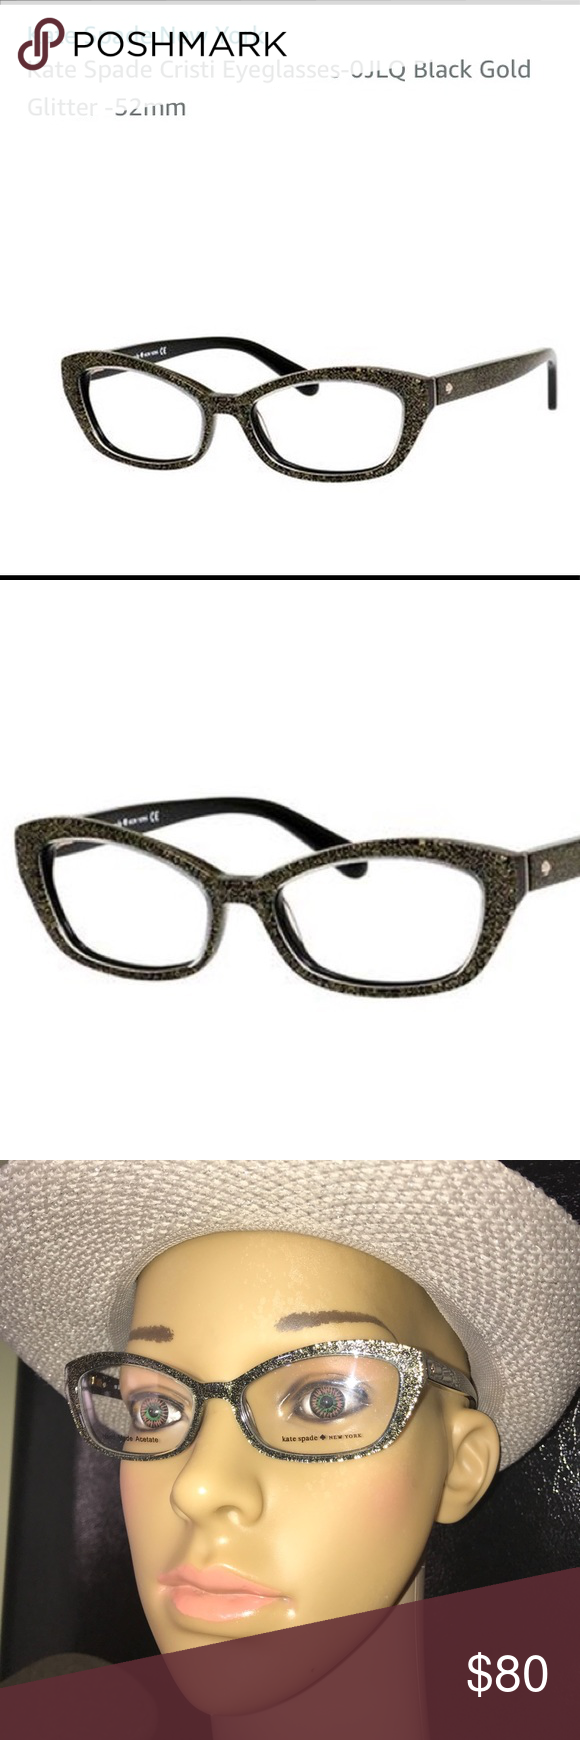 7af8fa9a35 Kate Spade Eyeglasses New inbox. Style is Cristi 0JLQ. Ready for your RX.  Size 50 16 135. Comes with hard case Retail  190 kate spade Accessories  Glasses